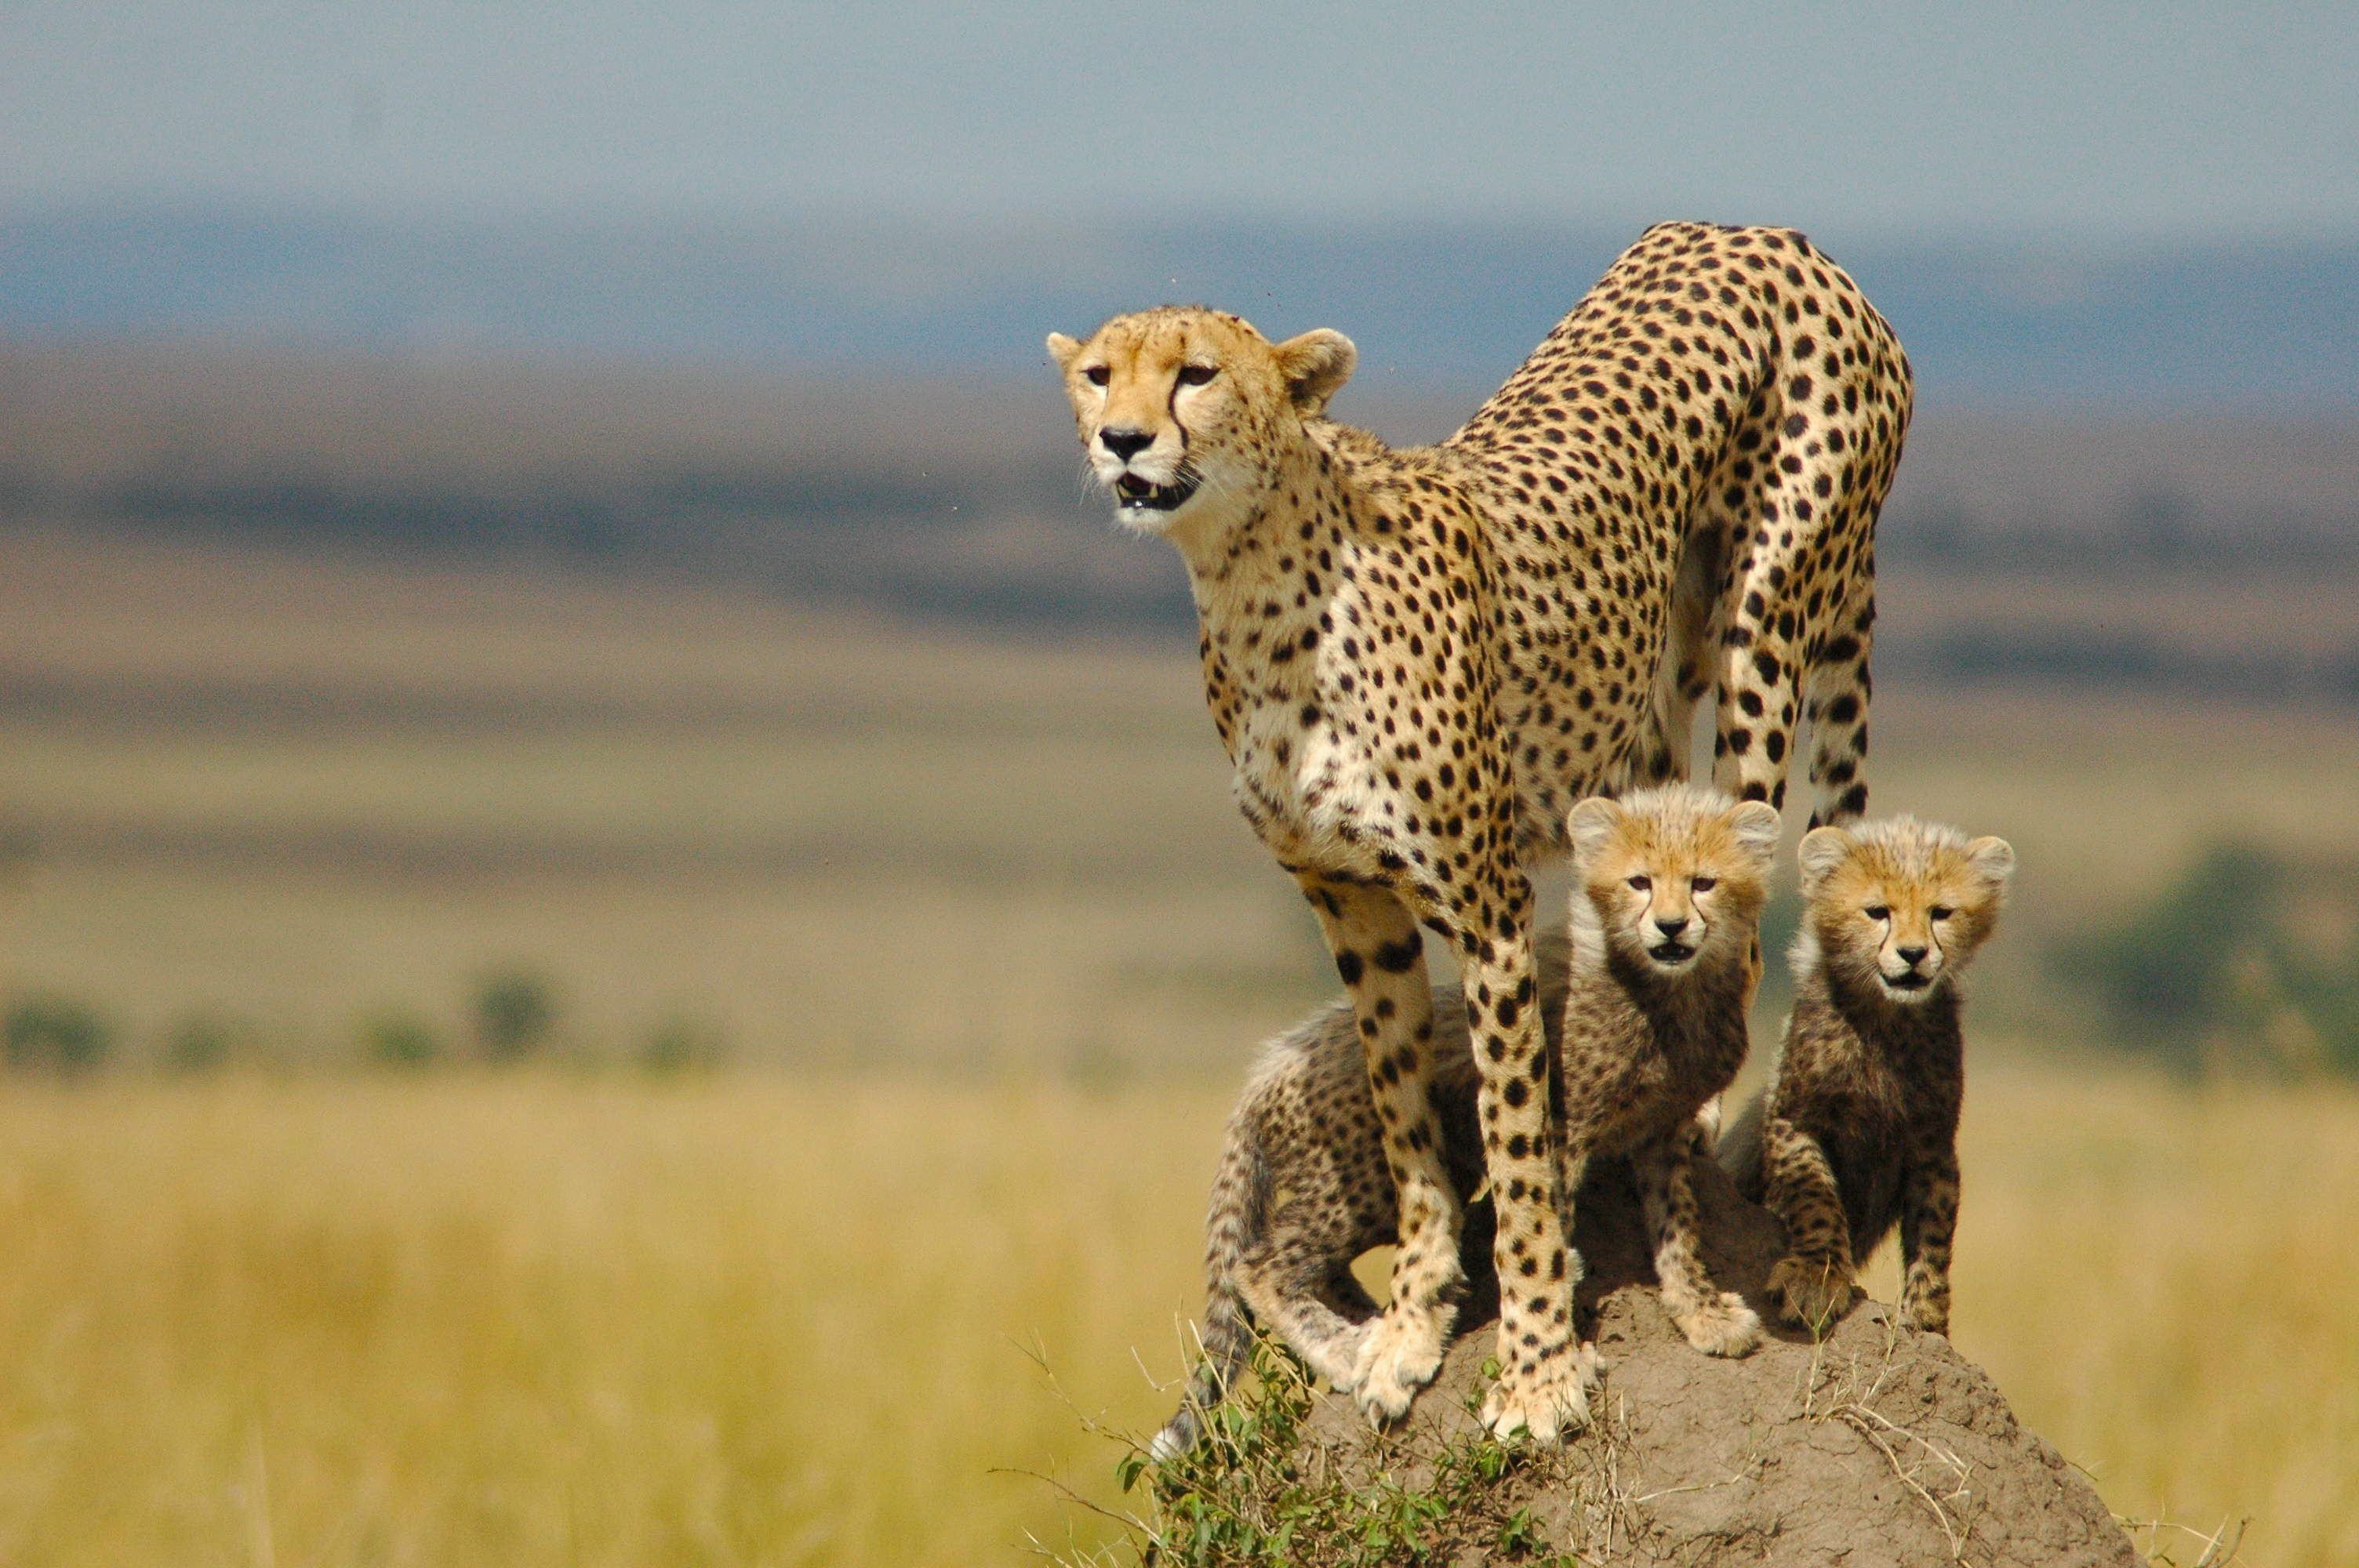 Cheetah backgrounds 64 pictures cheetah wallpapers voltagebd Image collections